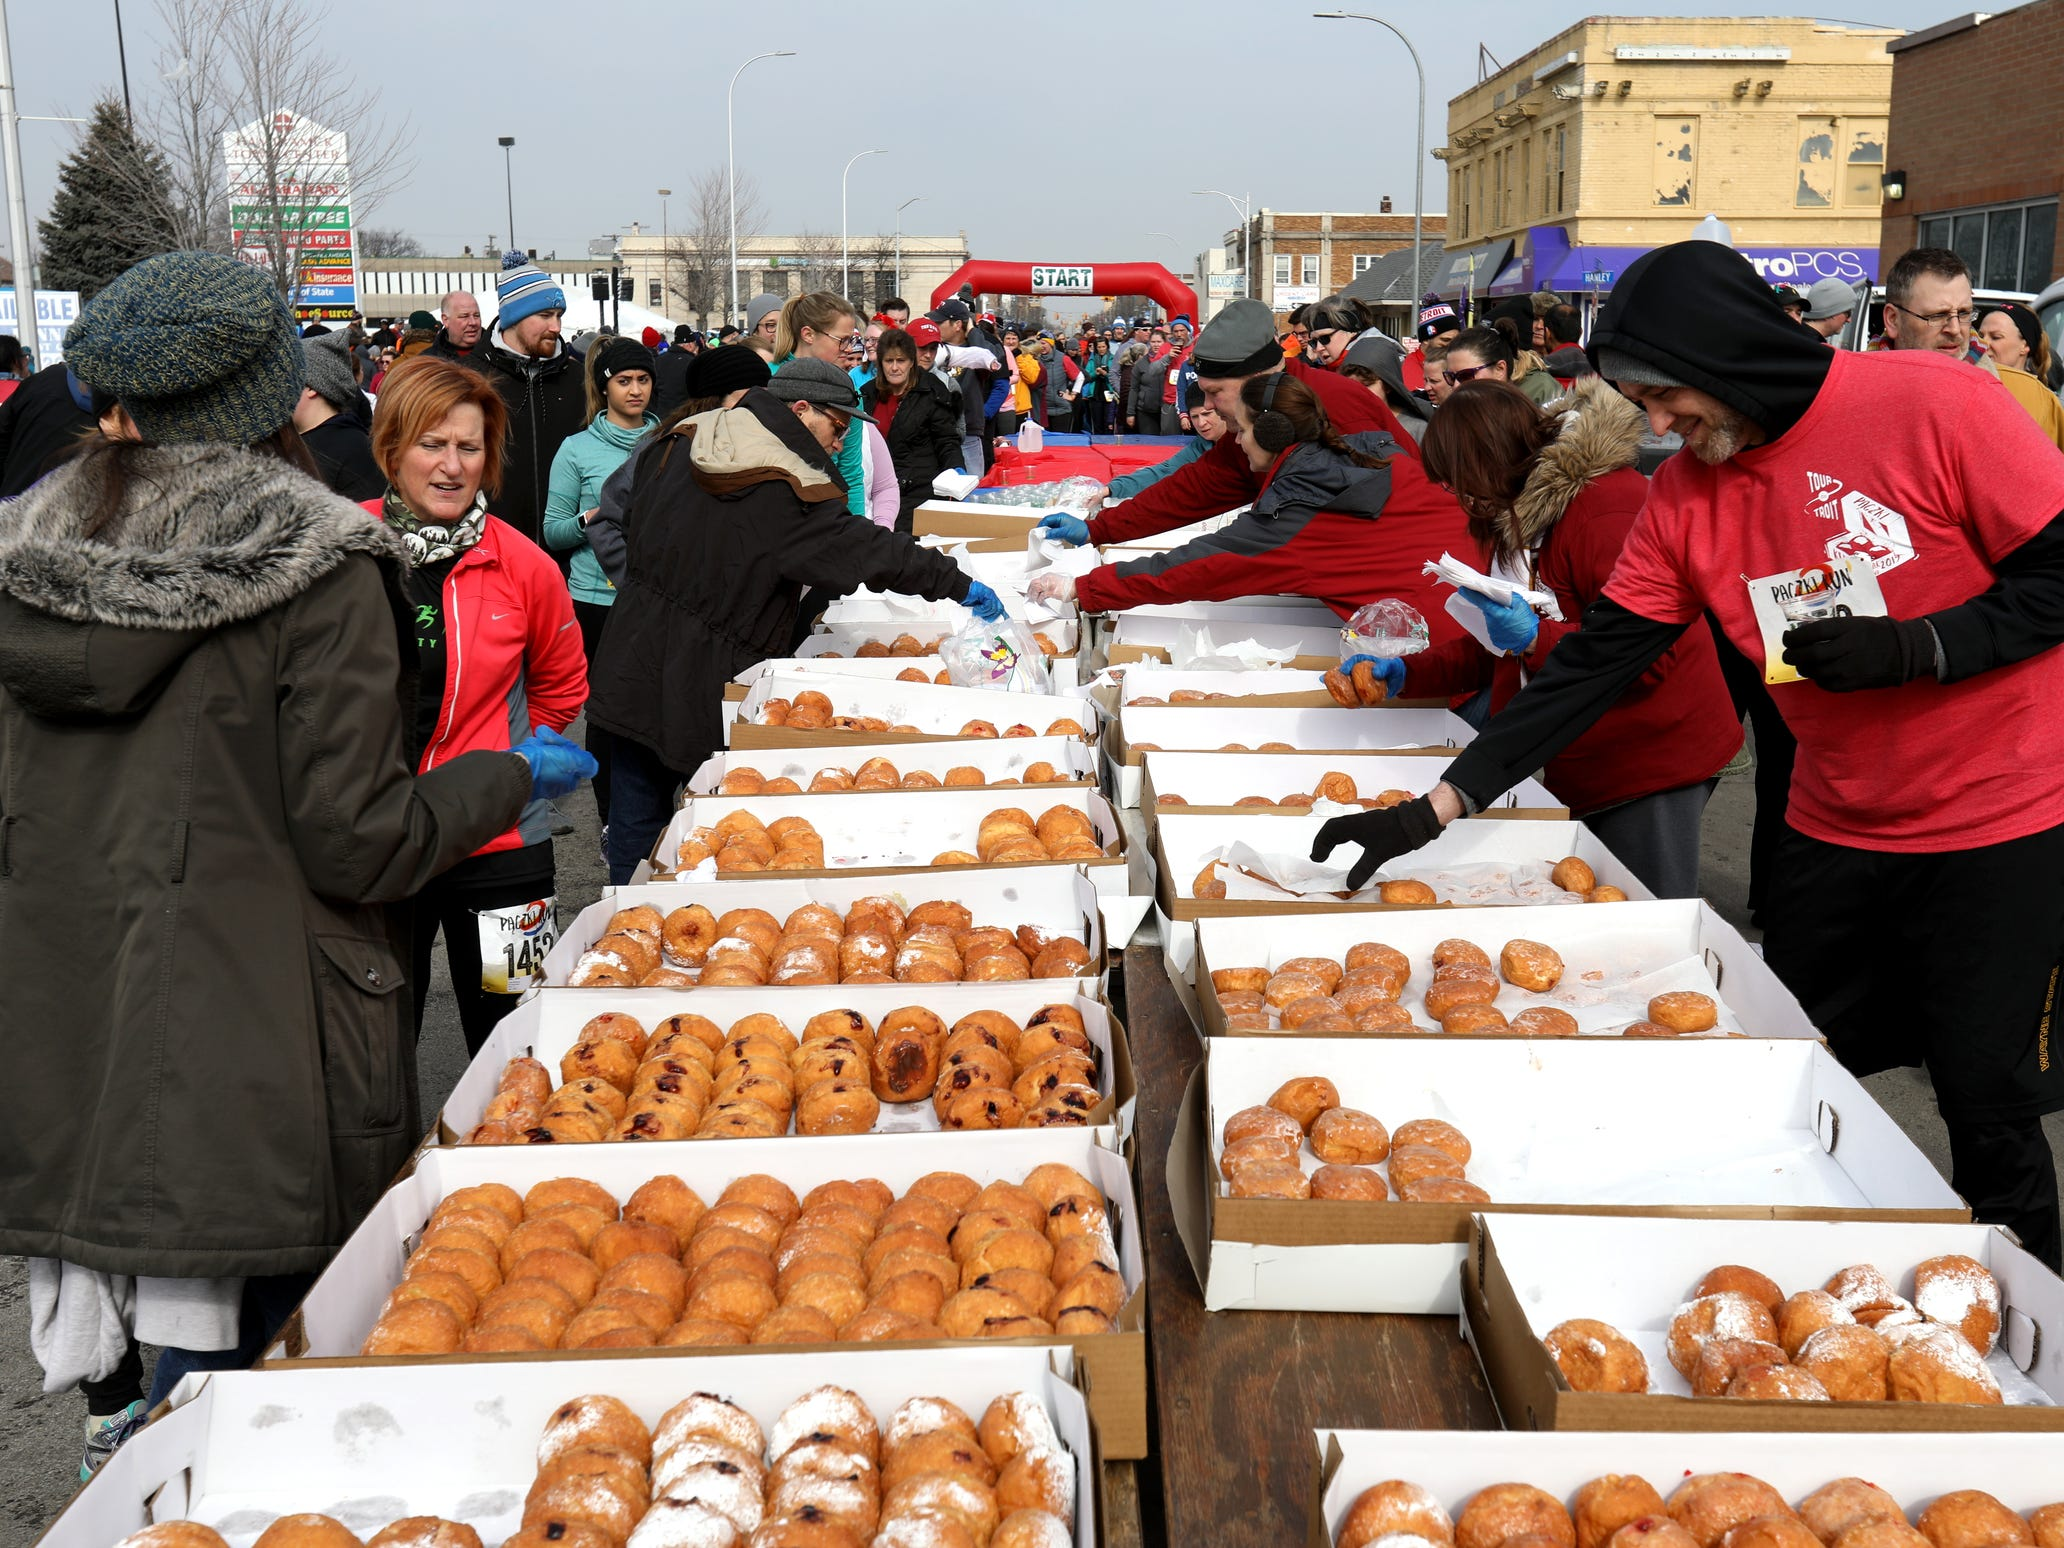 Runners look over and talk about some of the 7 variety kinds of Paczki they could choose from after they finished the 2019 Paczki 5K run through the streets and neighborhoods of downtown Hamtramck on Saturday, March 2, 2019.